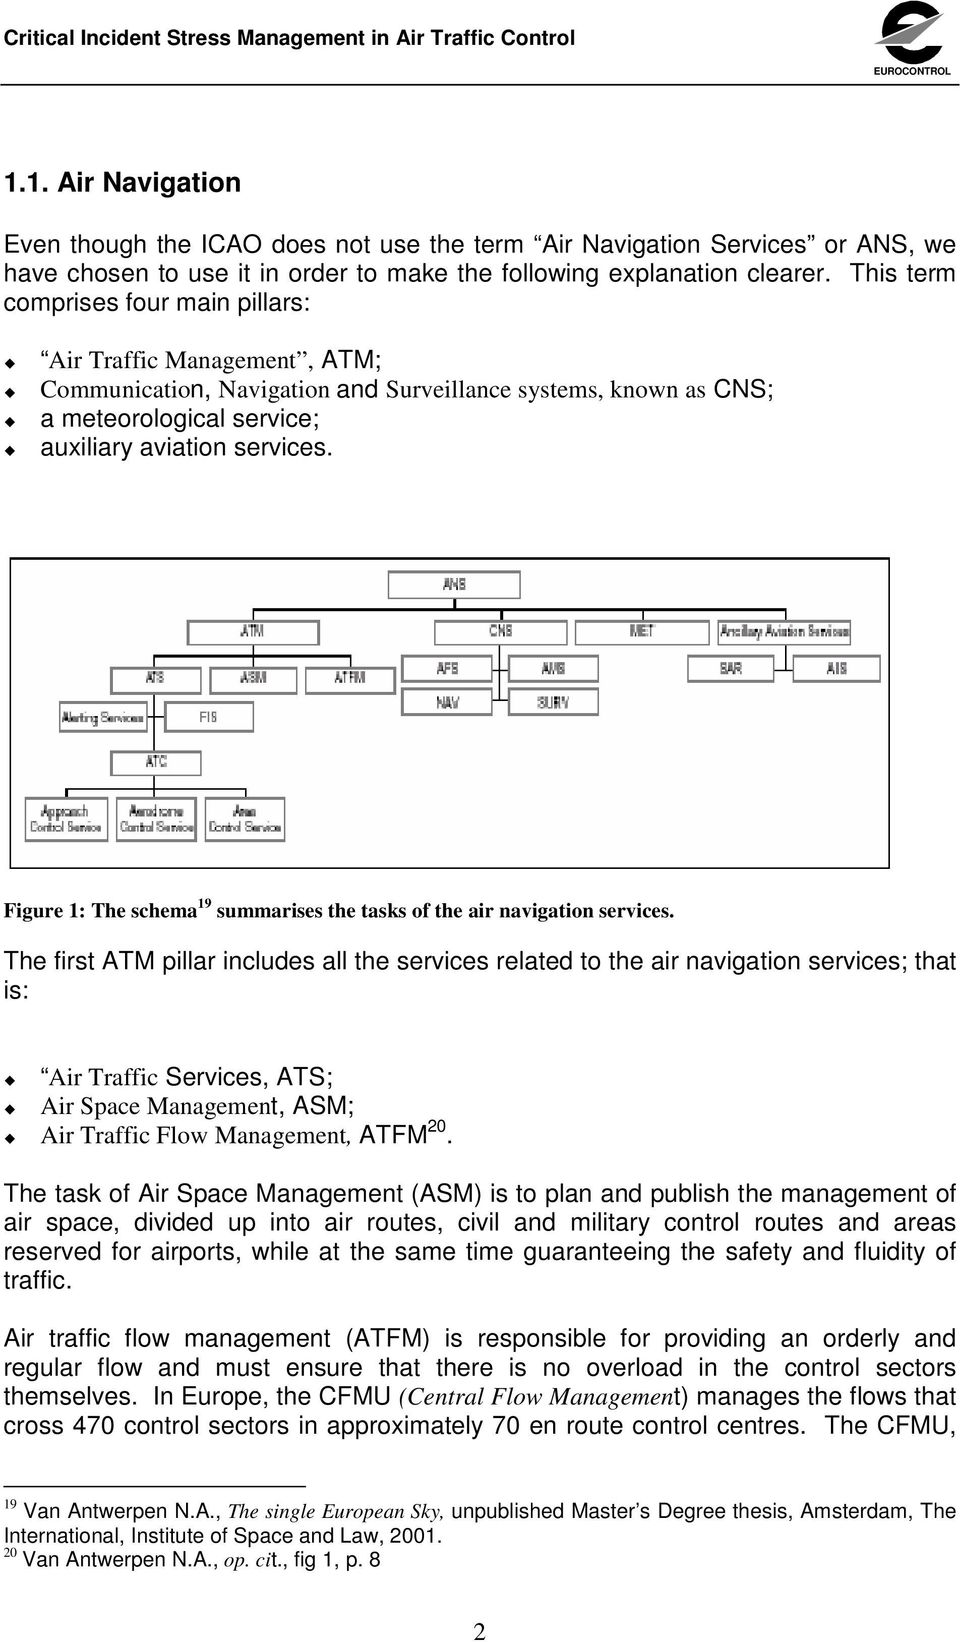 Figure 1: The schema 19 summarises the tasks of the air navigation services.